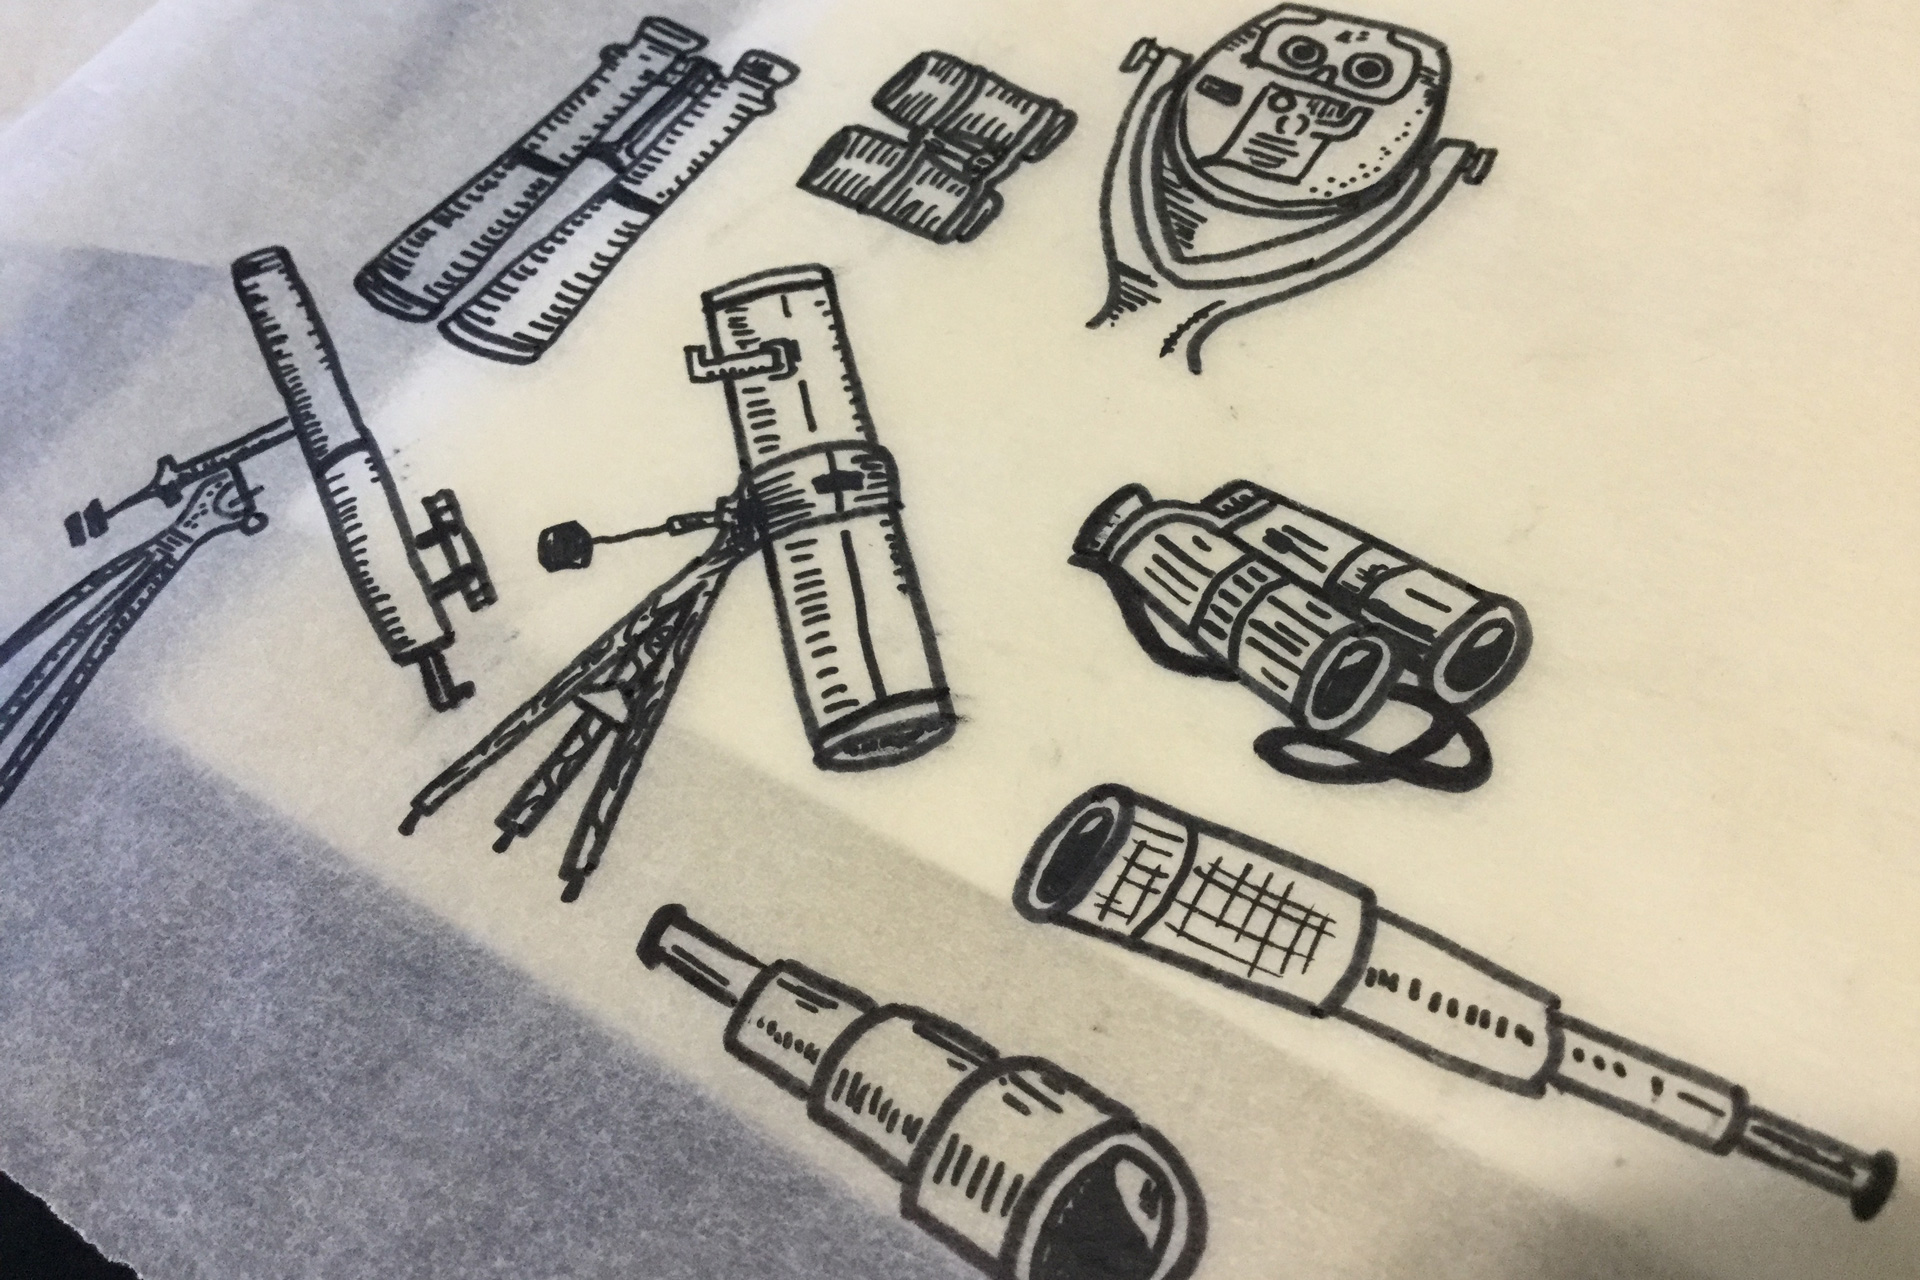 Telescopes and binoculars hand-drawn on a sheet of tracing paper